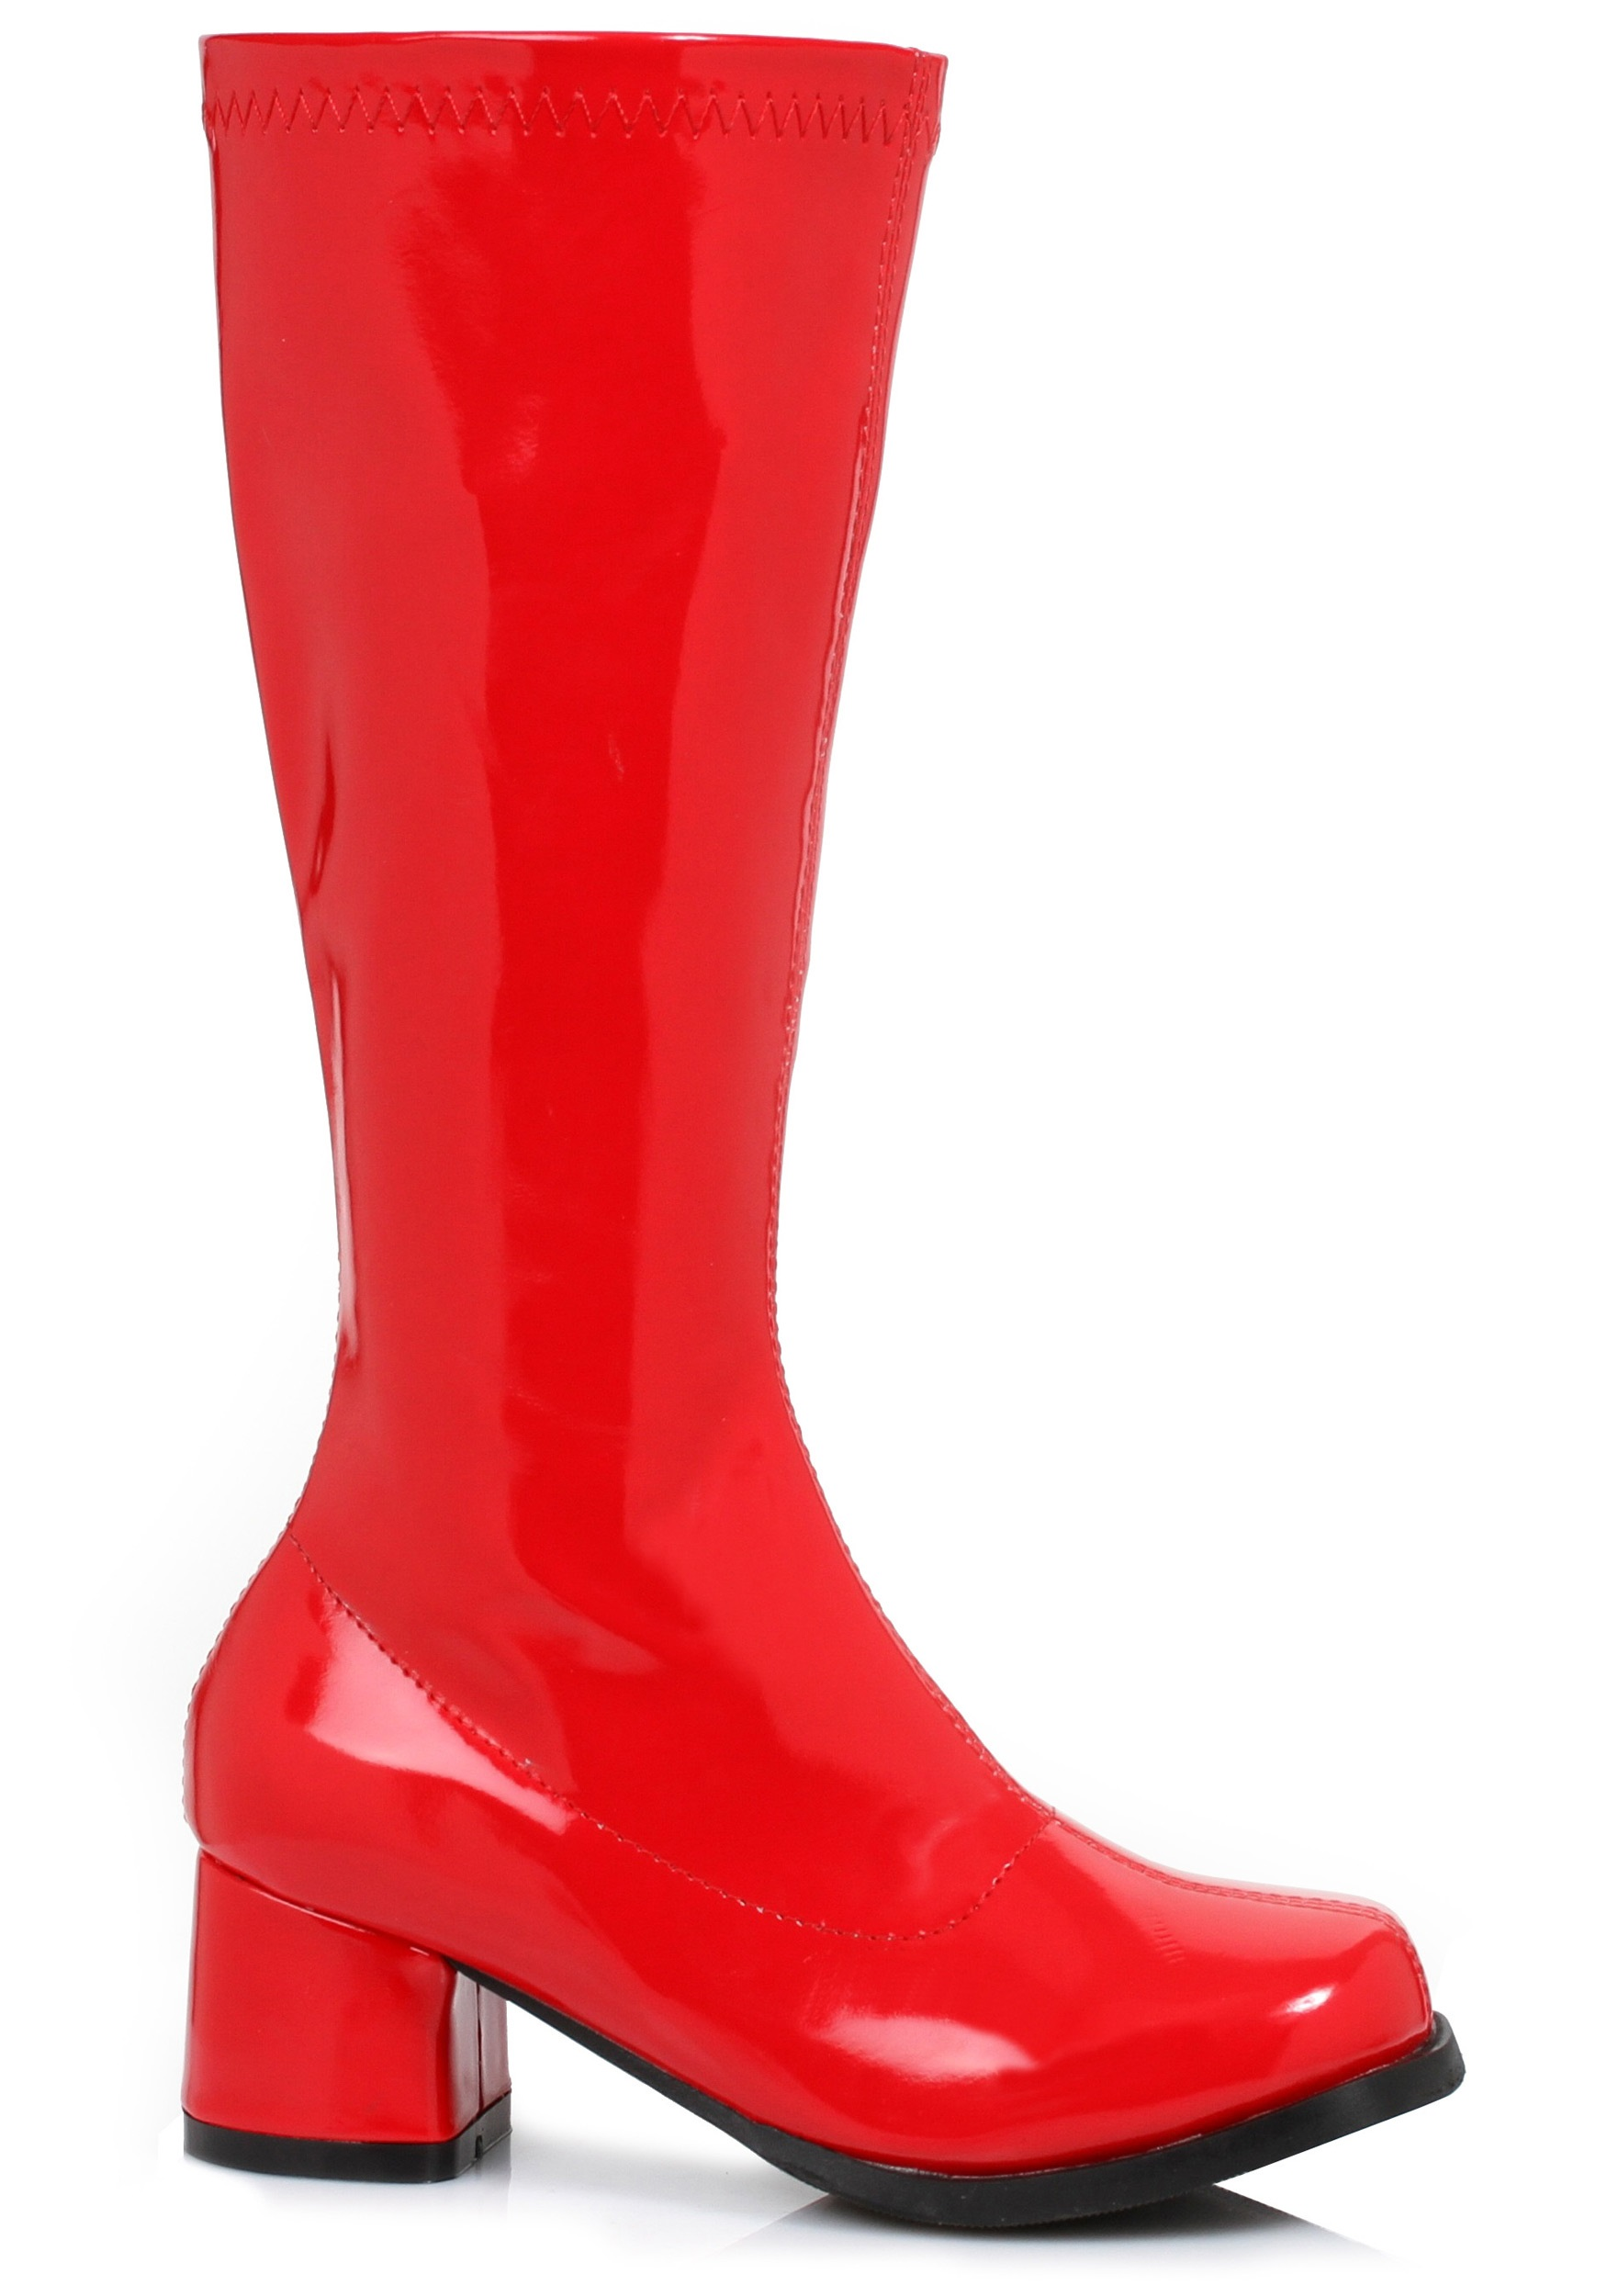 46a0847c5 girls-red-gogo-boots.jpg